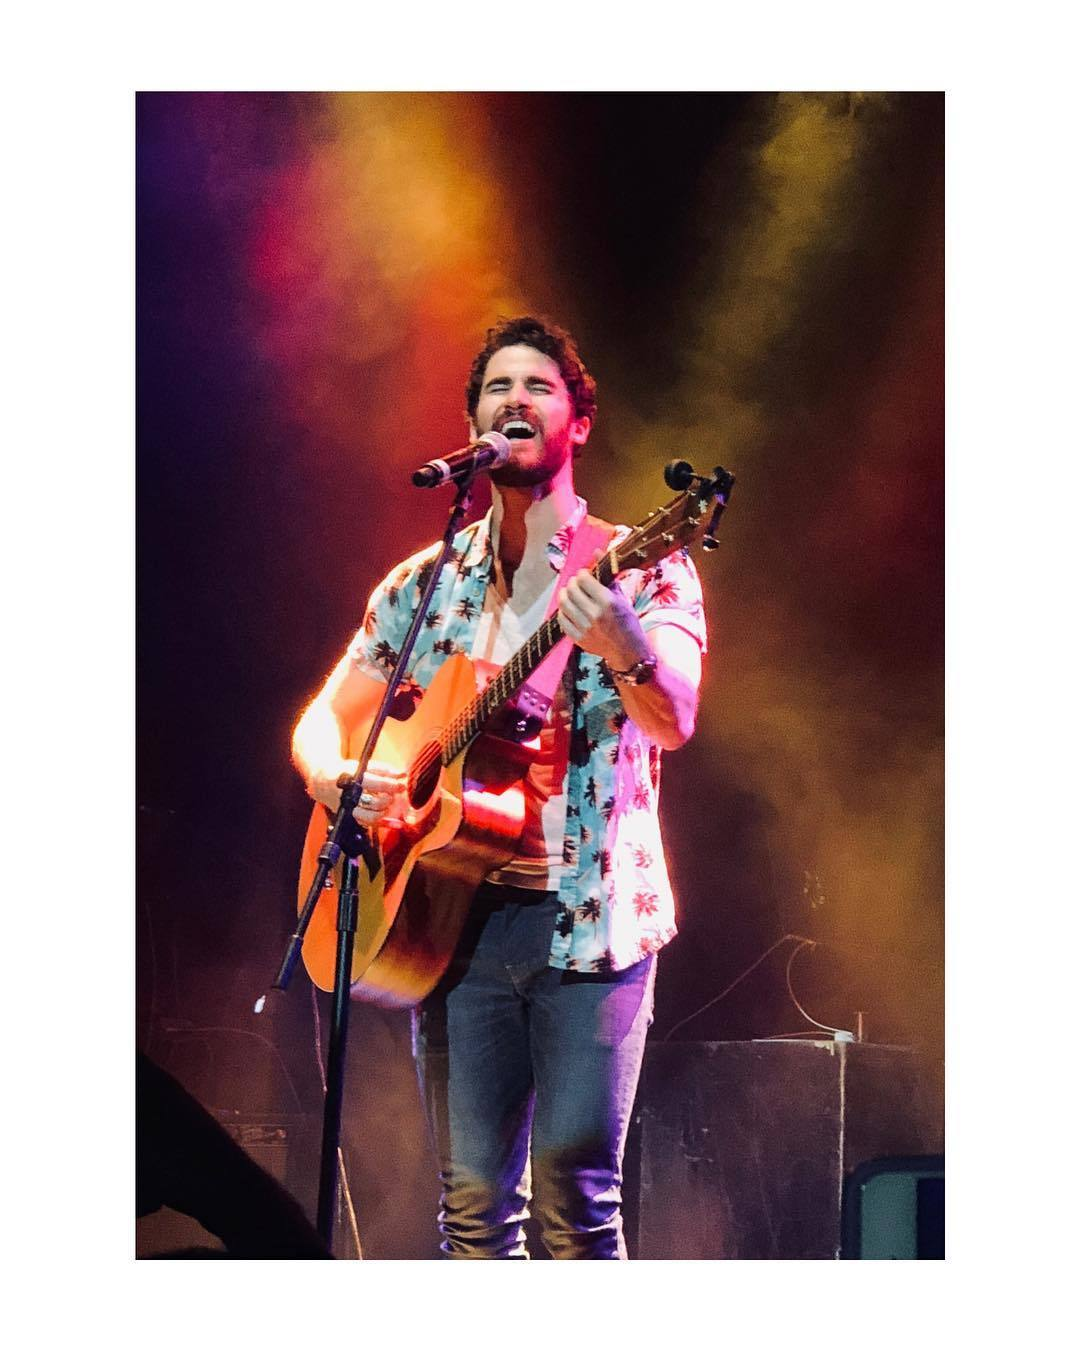 LMDCtour - Darren's Concerts and Other Musical Performancs for 2018 Tumblr_p6jdk90GiE1ubd9qxo1_1280